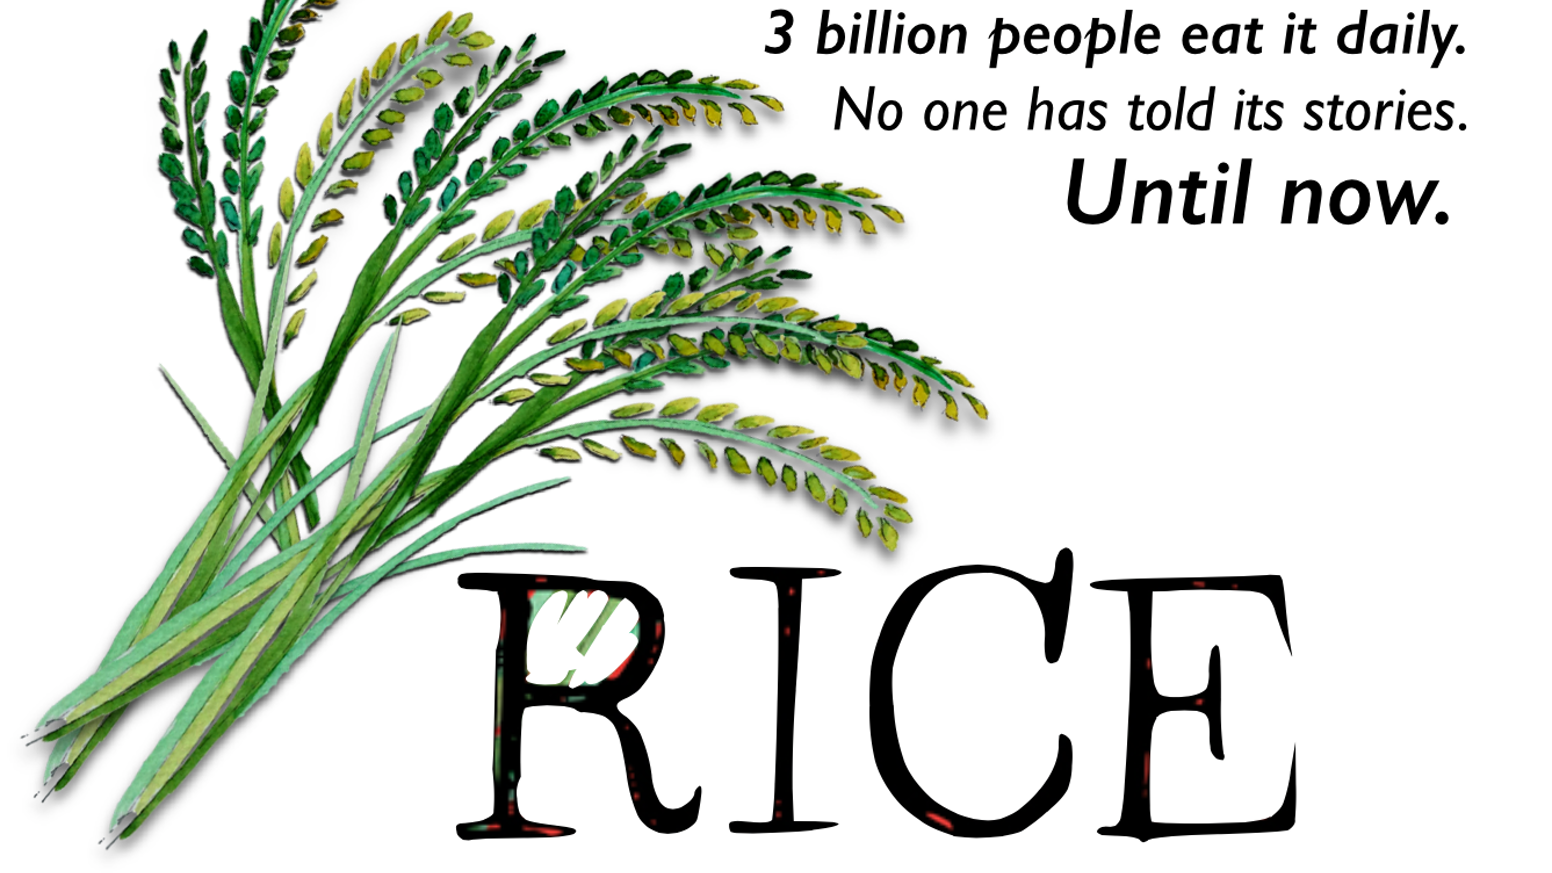 Quiet yet seething with drama... Rice is about to have its stories told. Expect gods, blood, tragedy, joy, thieves and yes, rice.